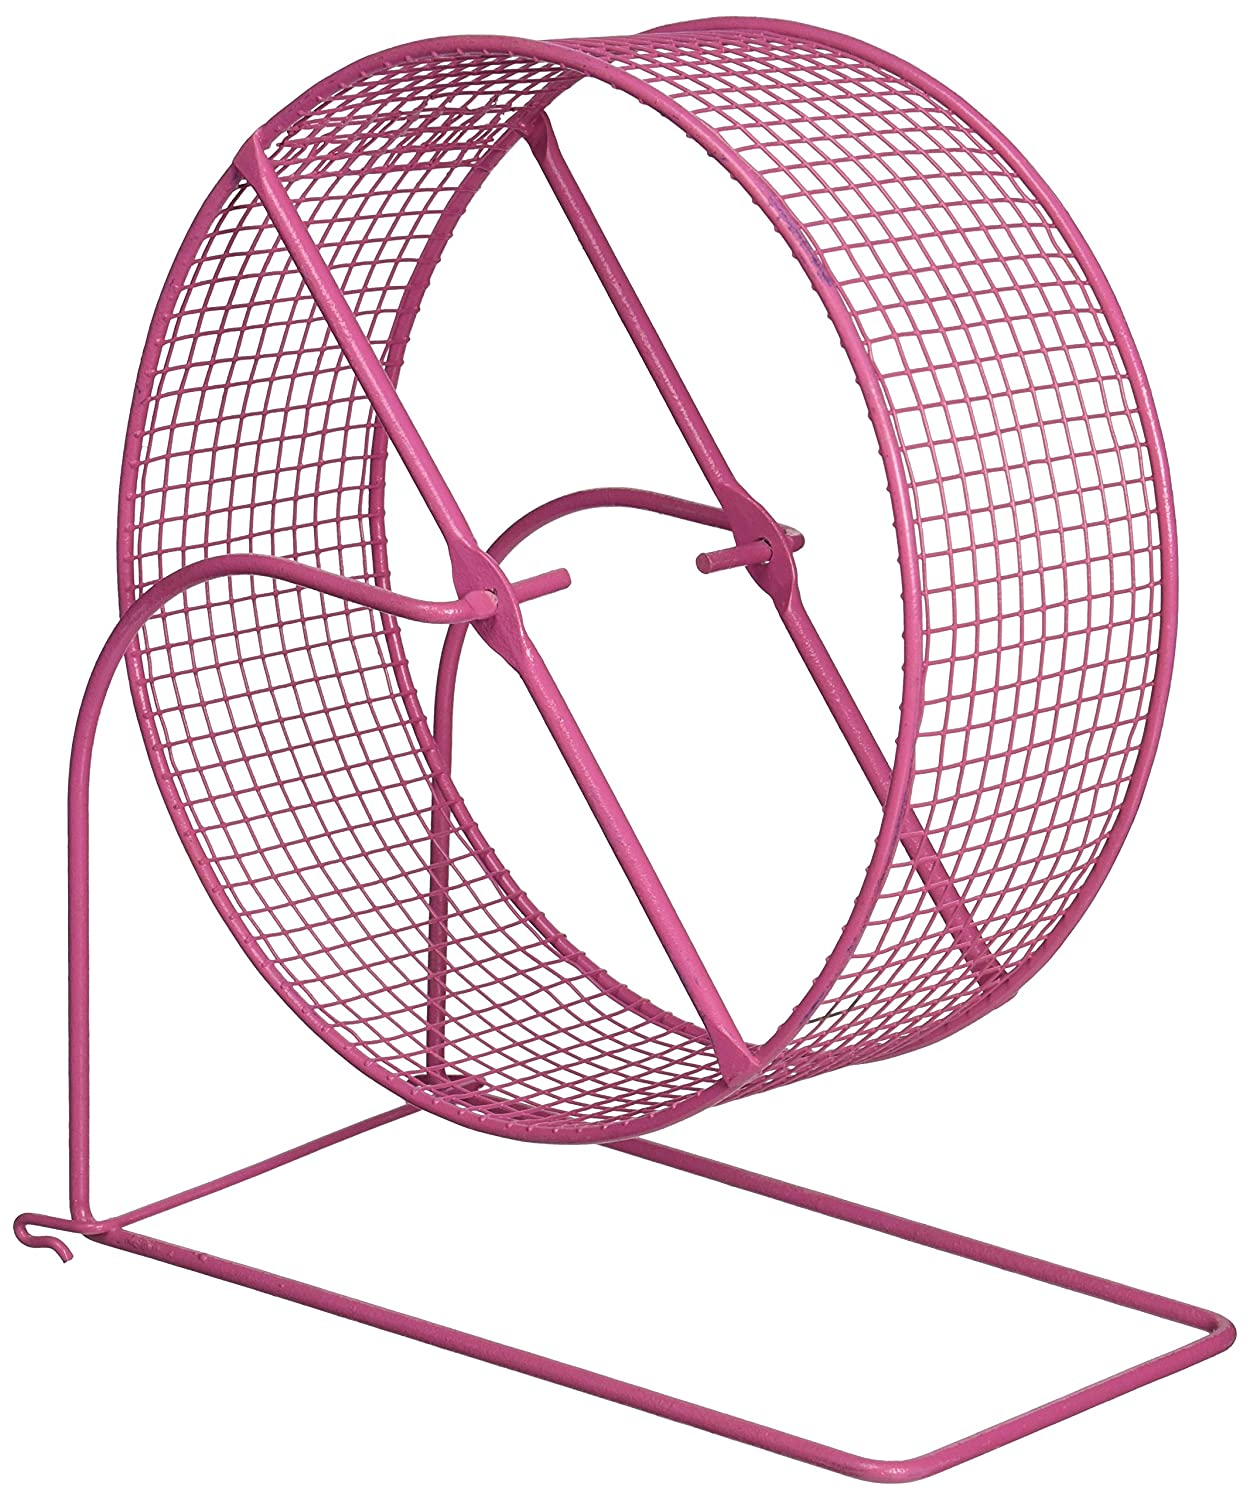 Prevue Pet Products SPV90013 Wire Mesh Hamster/Gerbil Wheel Toy for Small Animals, 8-Inch, Colors Vary